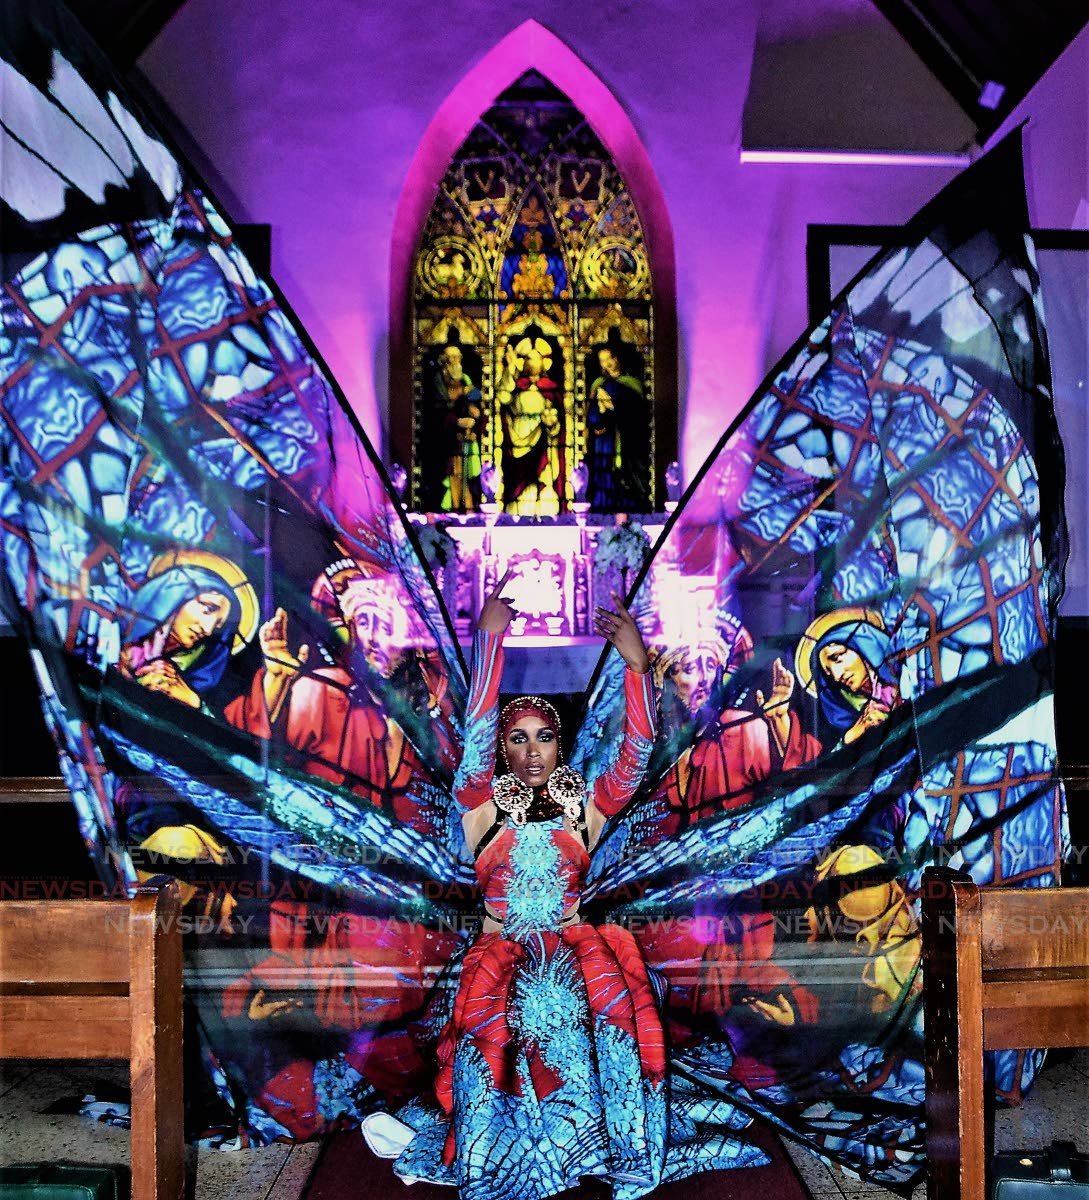 The Divine: Amare spreads her wings across the aisle of All Saints Anglican Church, Port of Spain sharing love in K2K Alliance and Partner's 2019 Christian-centric themed Carnival presentation Through Stained Glass Windows on Friday night.  PHOTOS BY GARY CARDINEZ